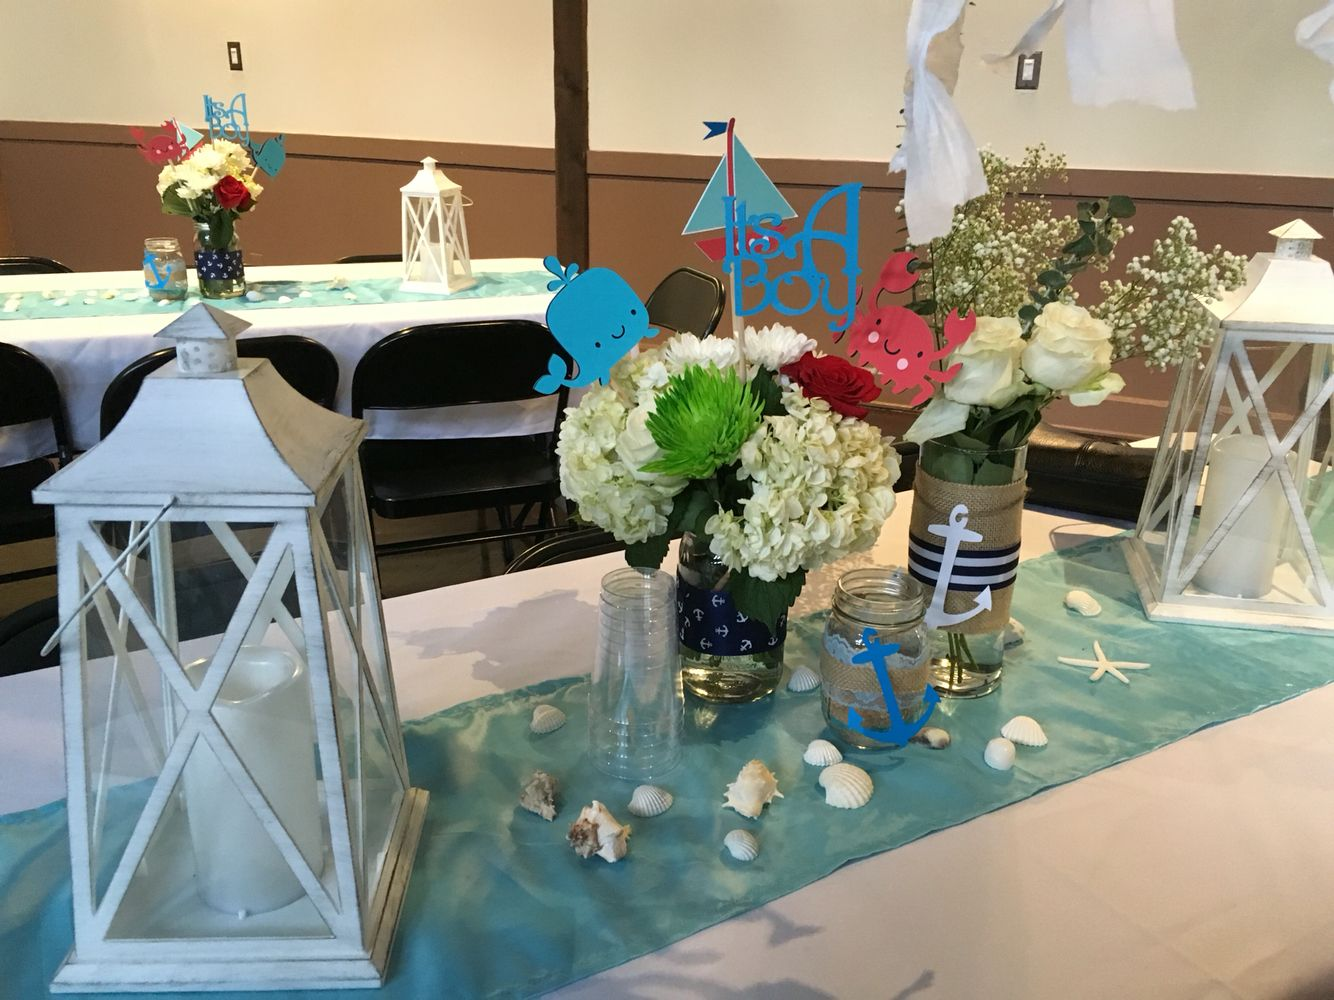 Nautical Baby Shower Table Decorations With Lanterns Fresh Flowers In Mason Jars Table Decorations Nautical Centerpiece Nautical Table